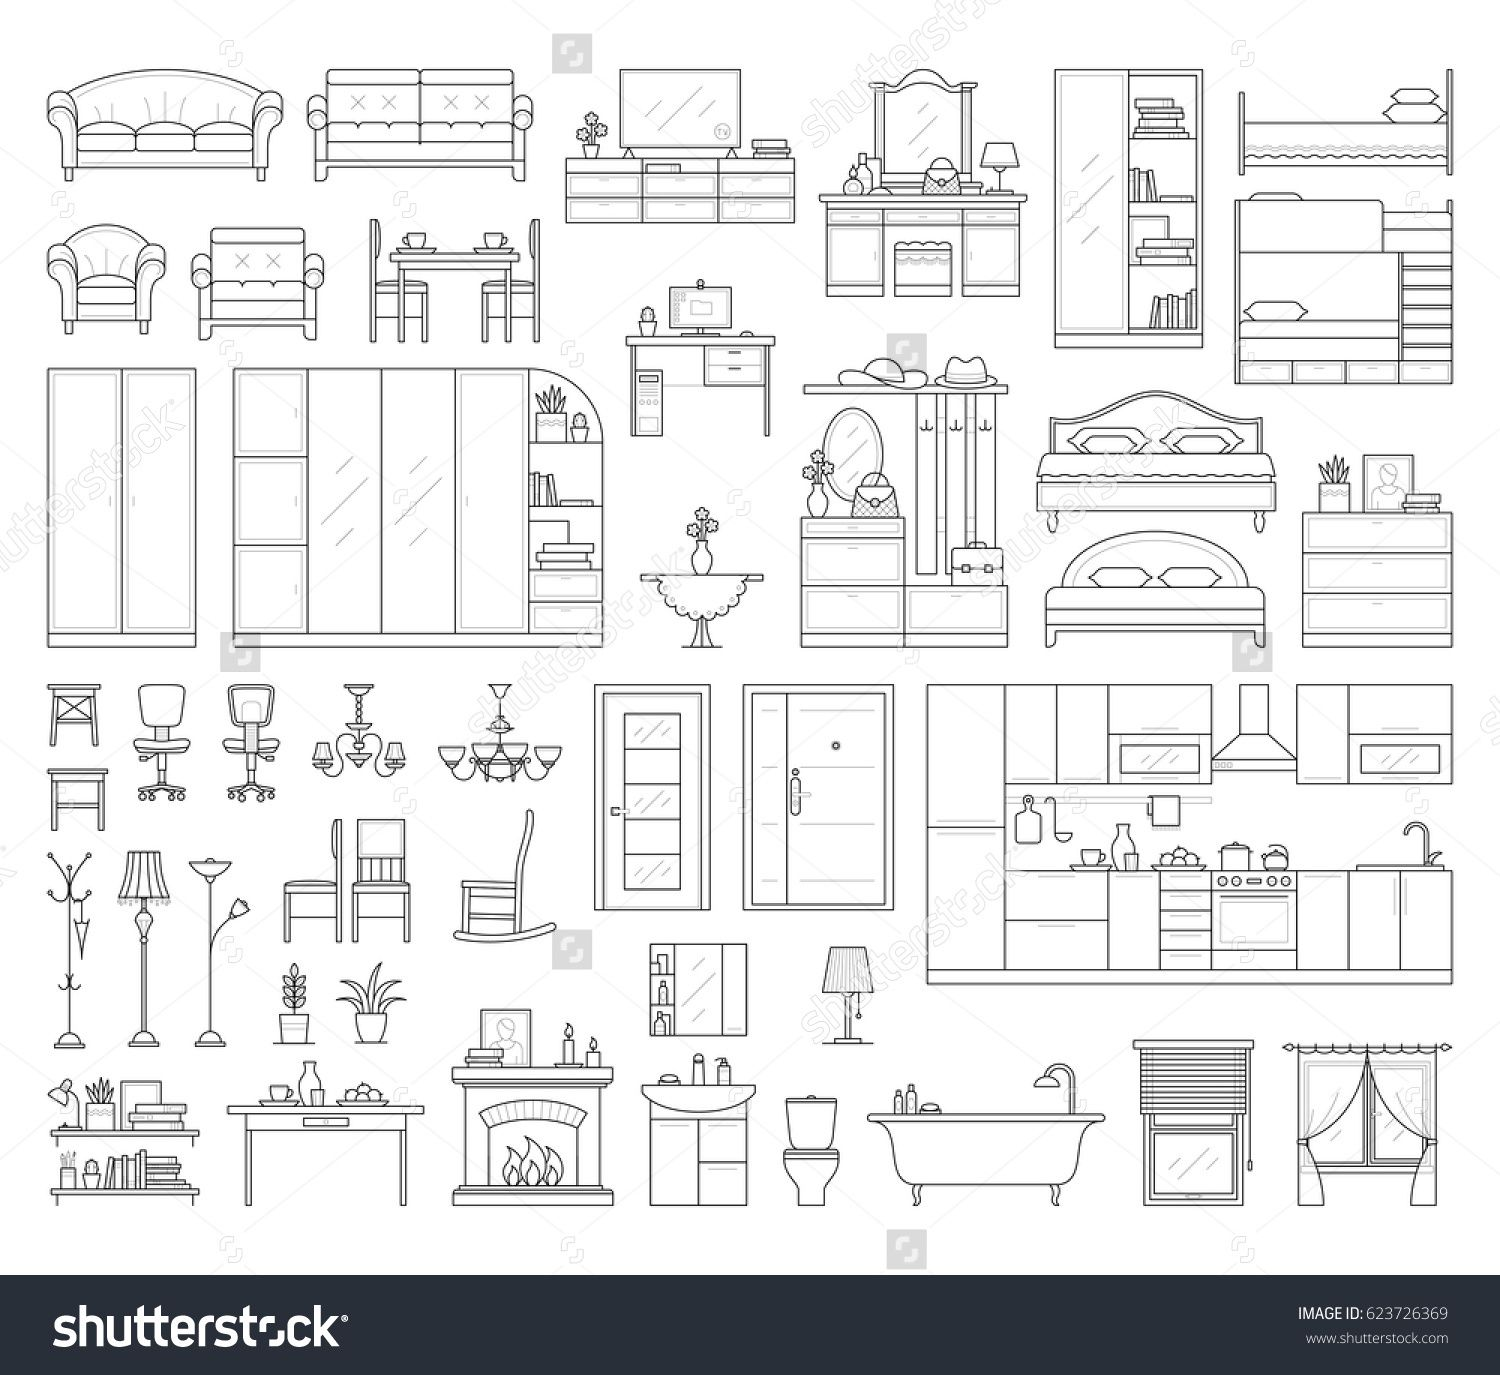 Vector Icons Set Of House Interior Furniture Collection In Thin Linear Style Elem Furniture Design Sketches Interior Design Drawings Interior Design Sketches